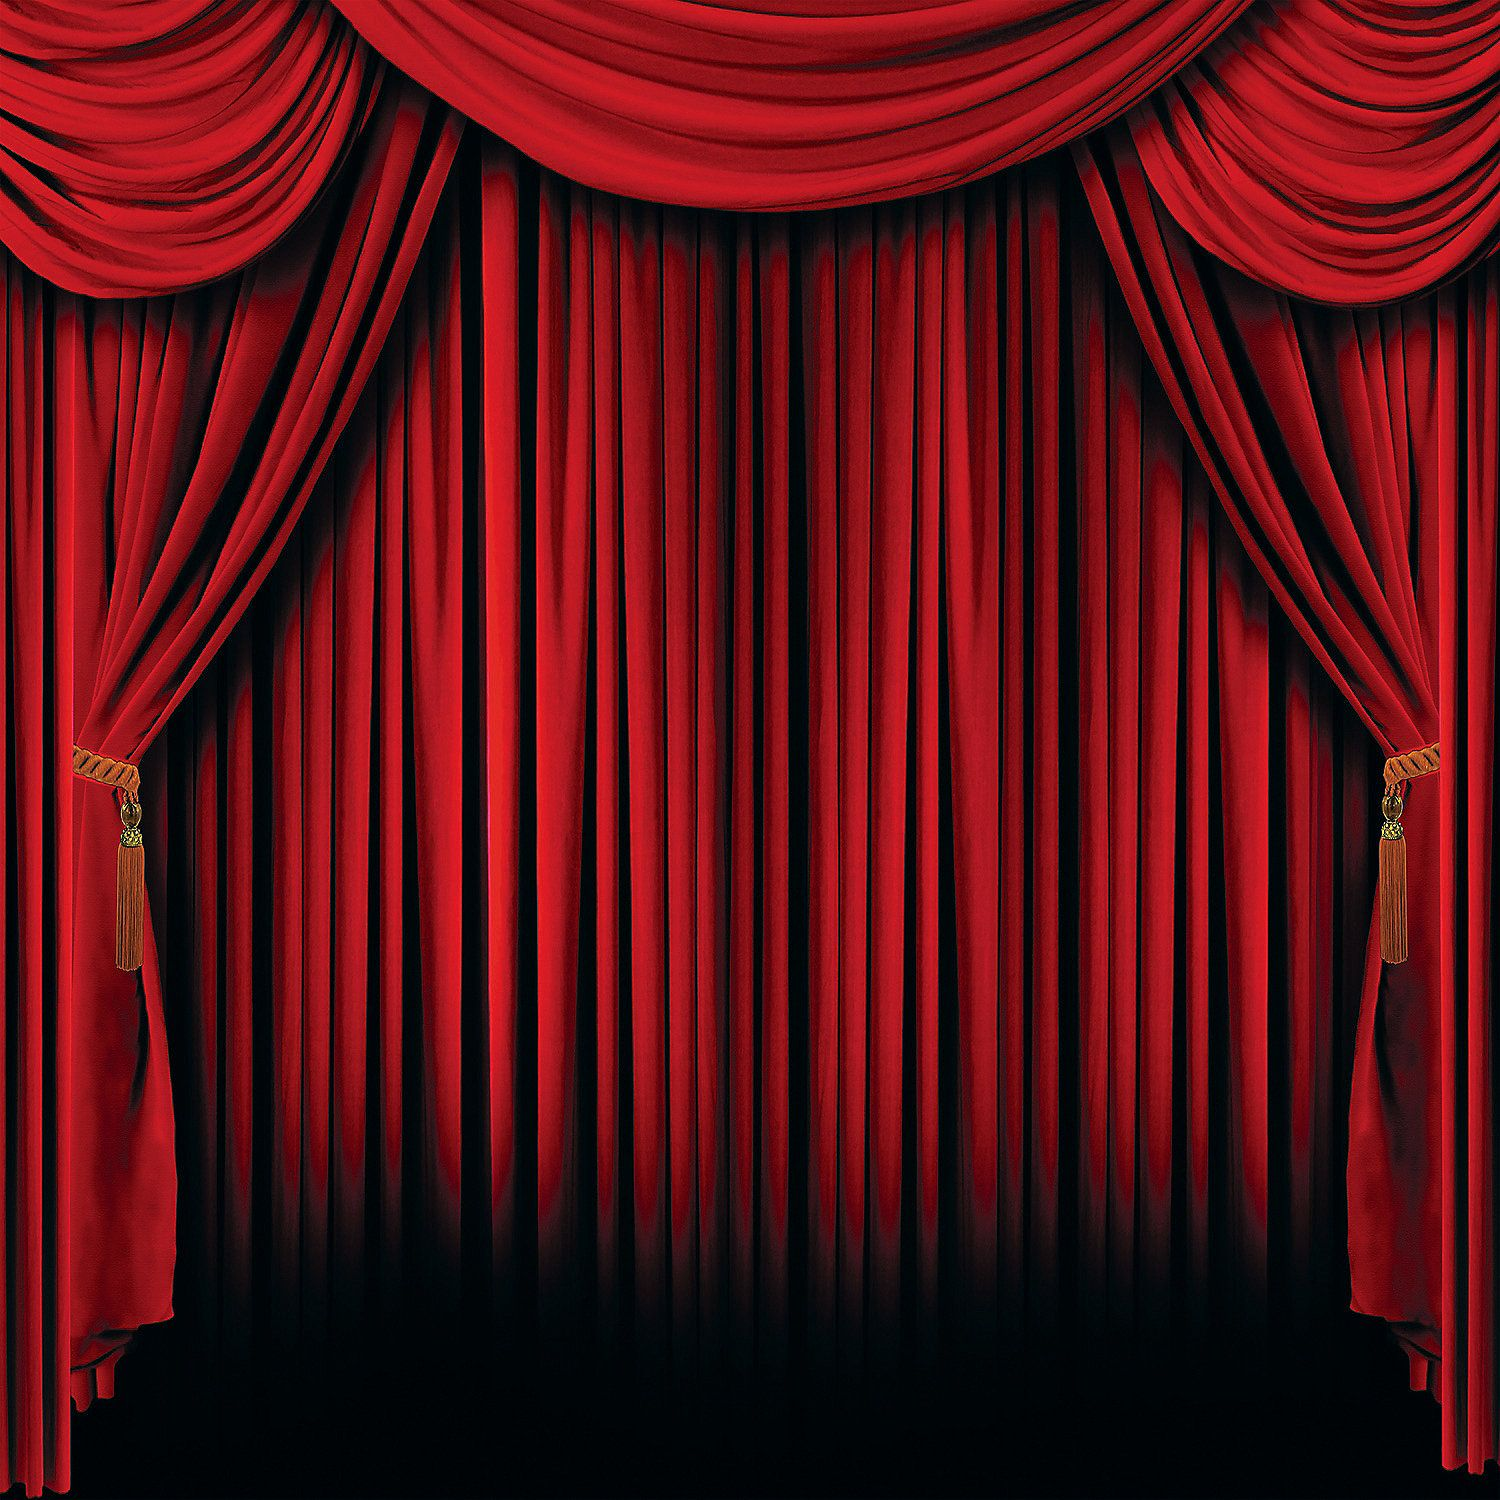 Red Curtain Backdrop Halloween Ideas Stage Curtains